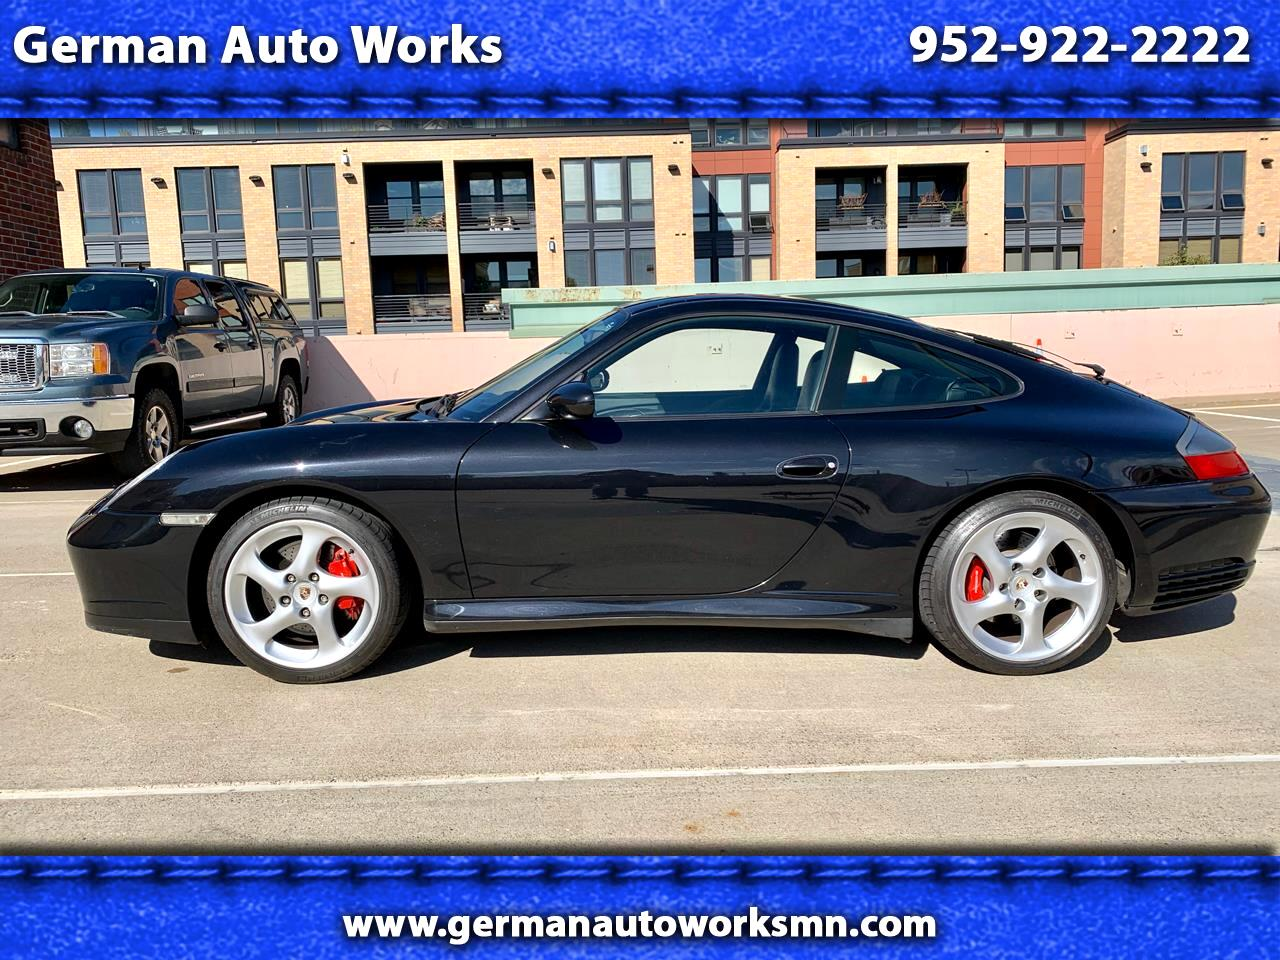 2002 Porsche 911 Carrera 2dr Carrera Cpe 6-Spd Manual